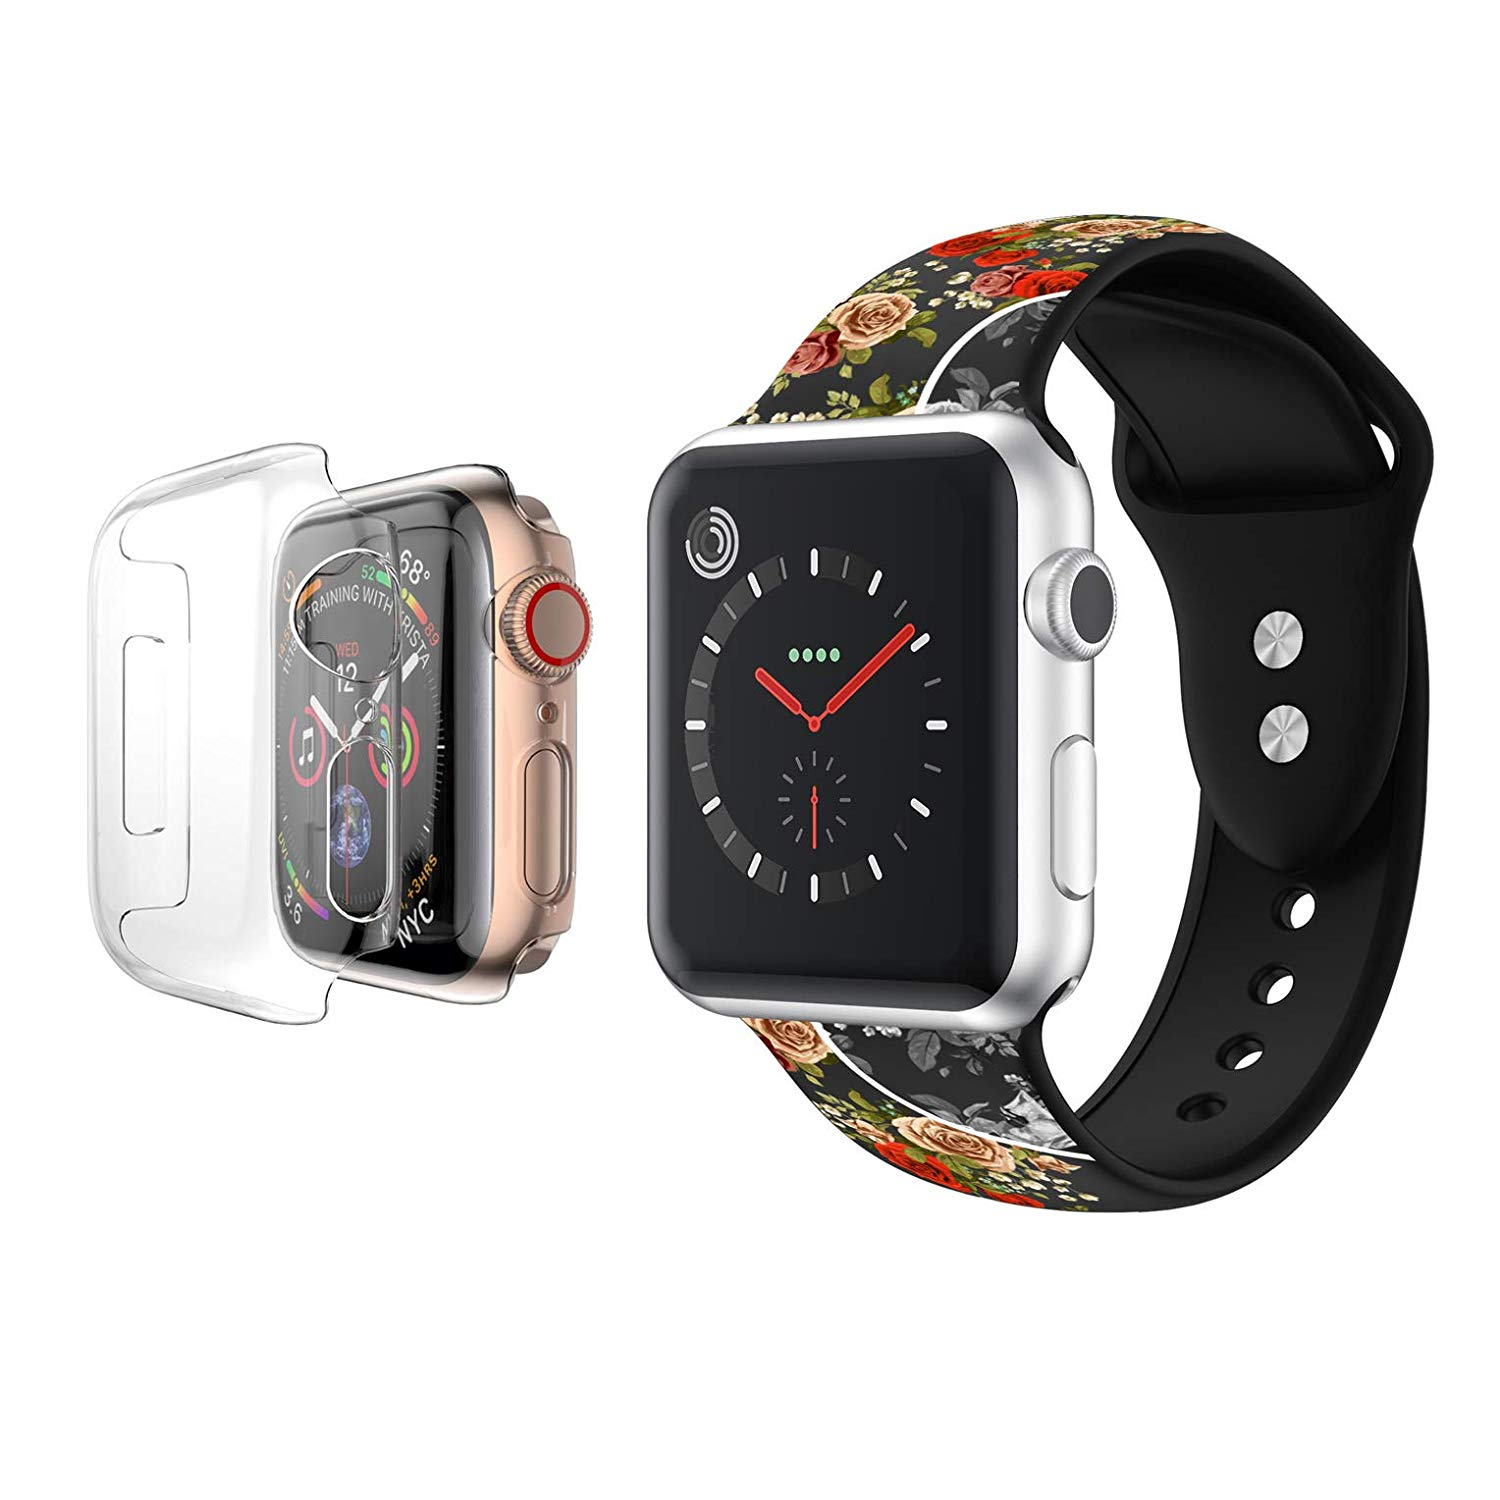 Apple Watch Replacement Bands 40mm with Full Body Clear Hard Case Temper Glass Screen Protector Soft Silicone Replacement Wristband for iWatch Apple Watch Series 4 - Rainbow Rose Floral - image 3 of 3